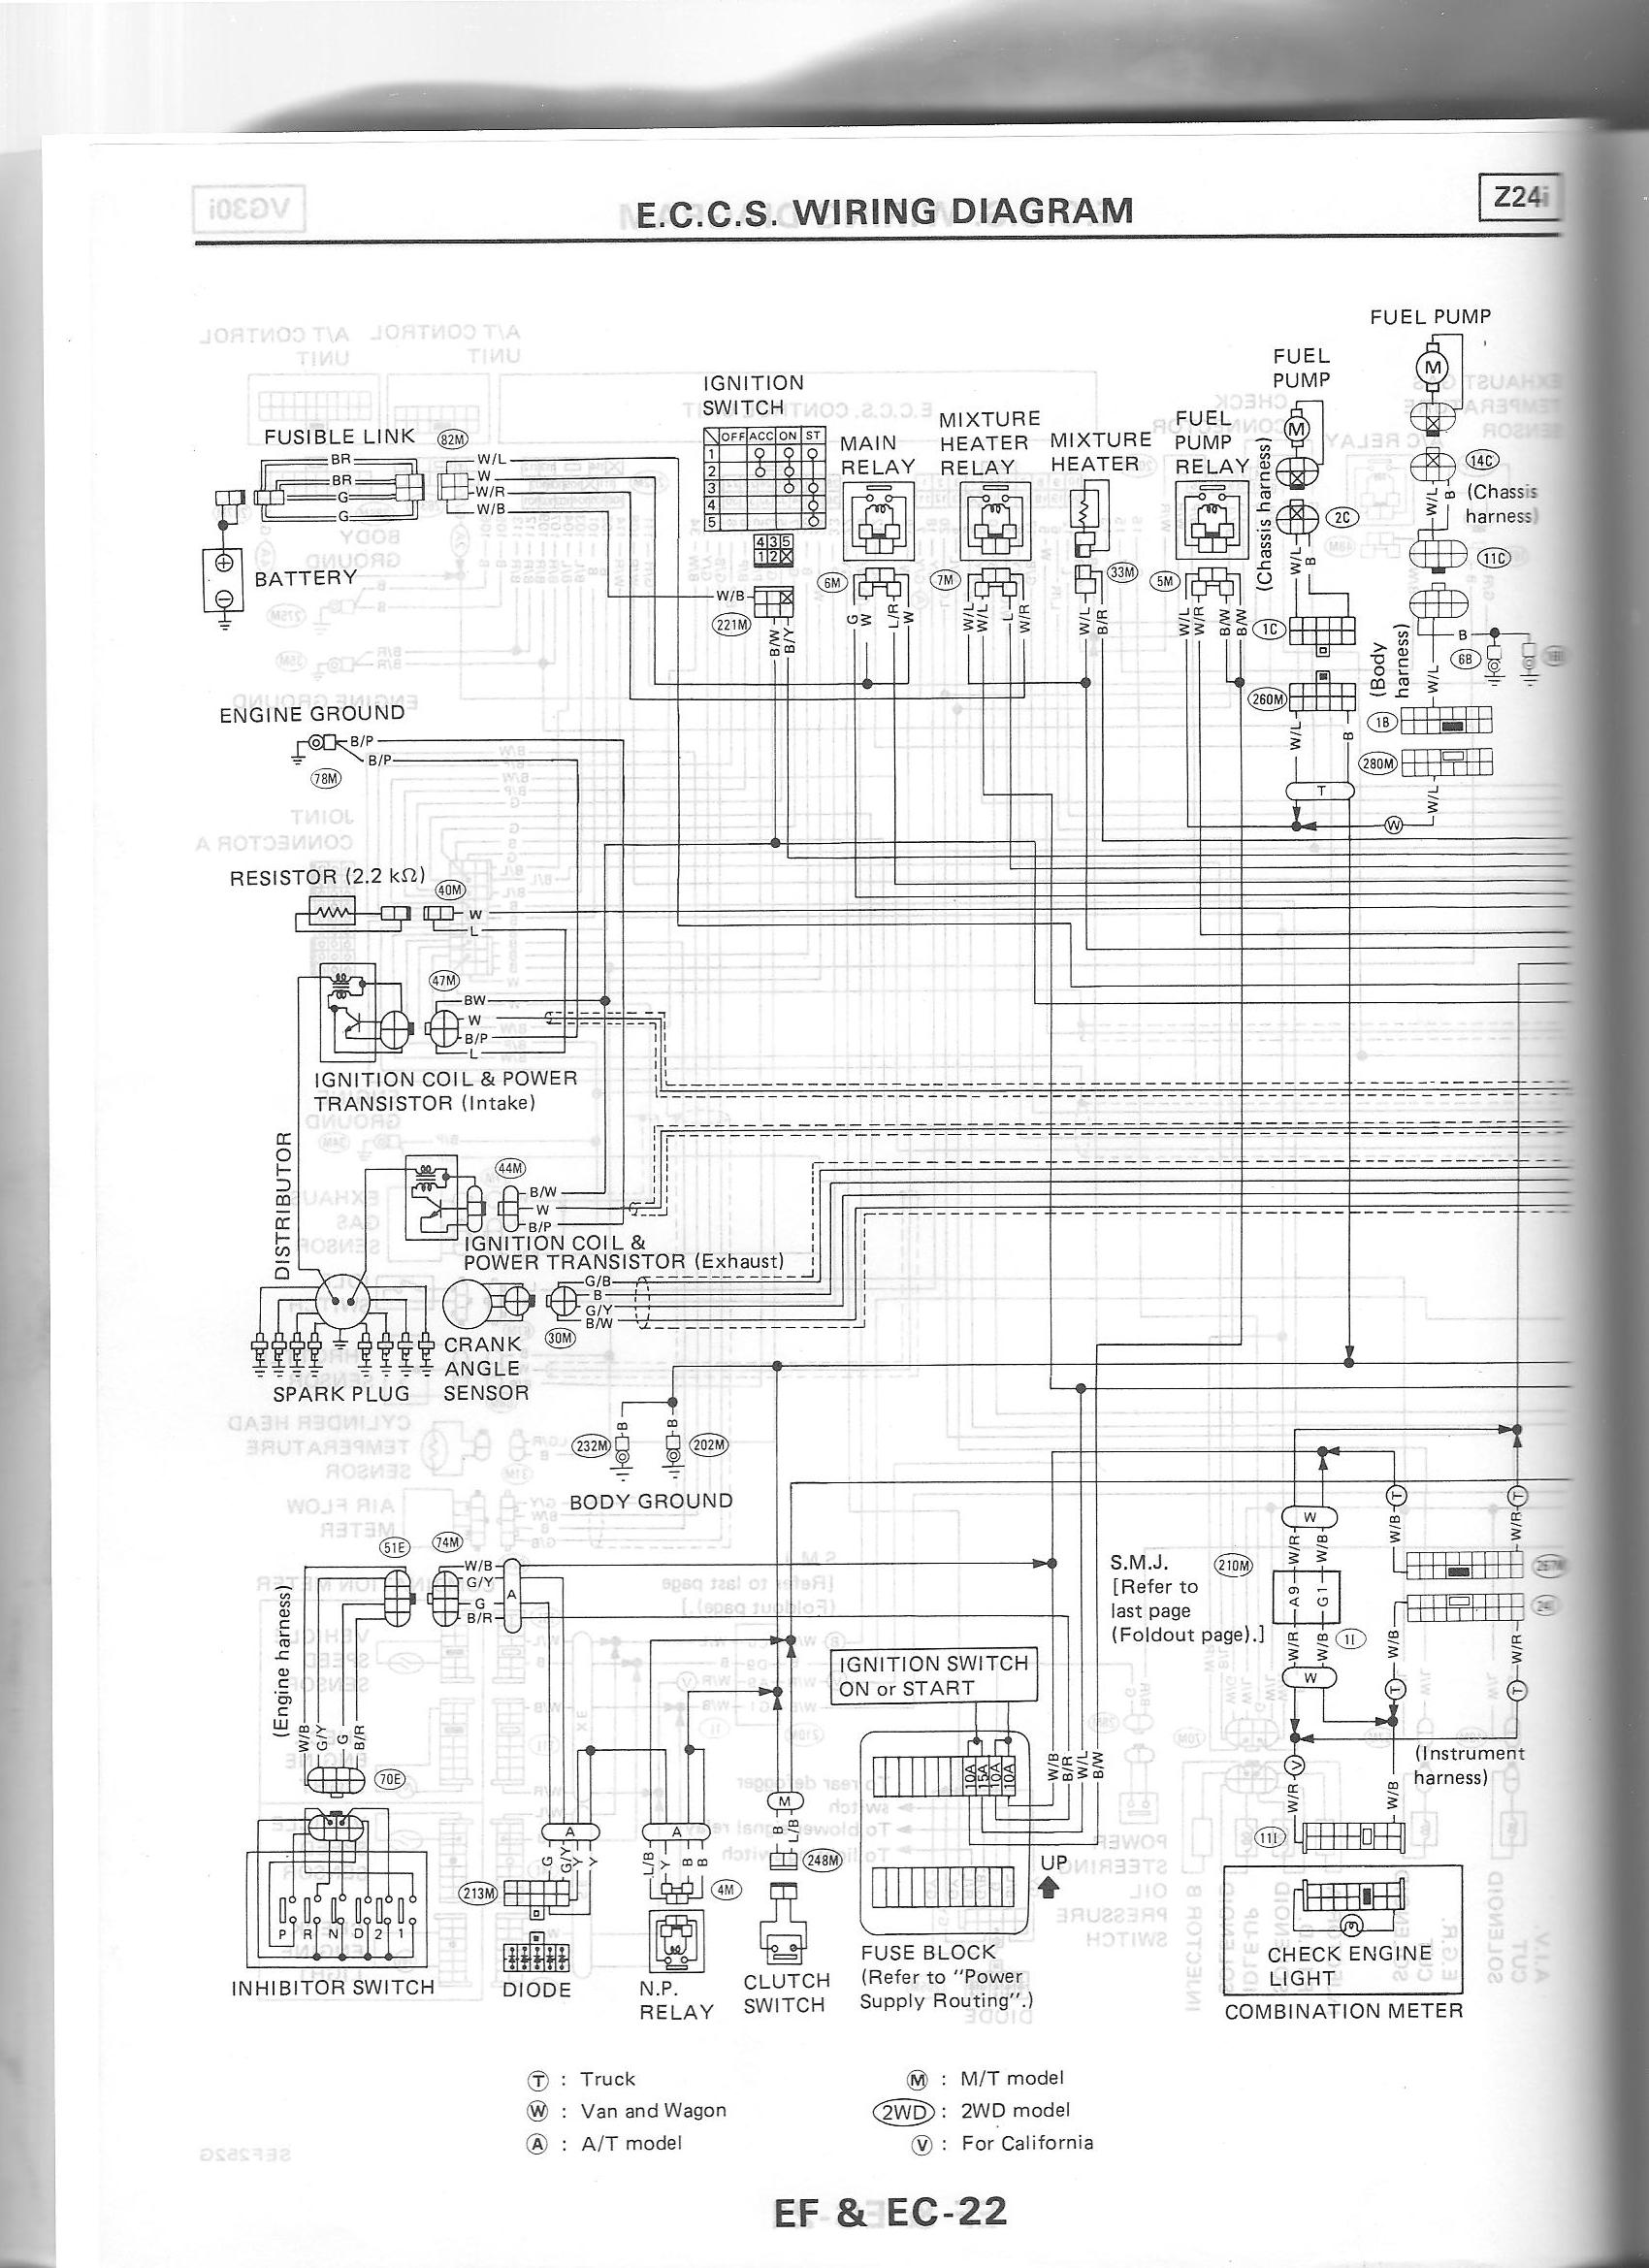 wiring1_88 nissan nut nissan d21 fuel pump wiring diagram at bayanpartner.co